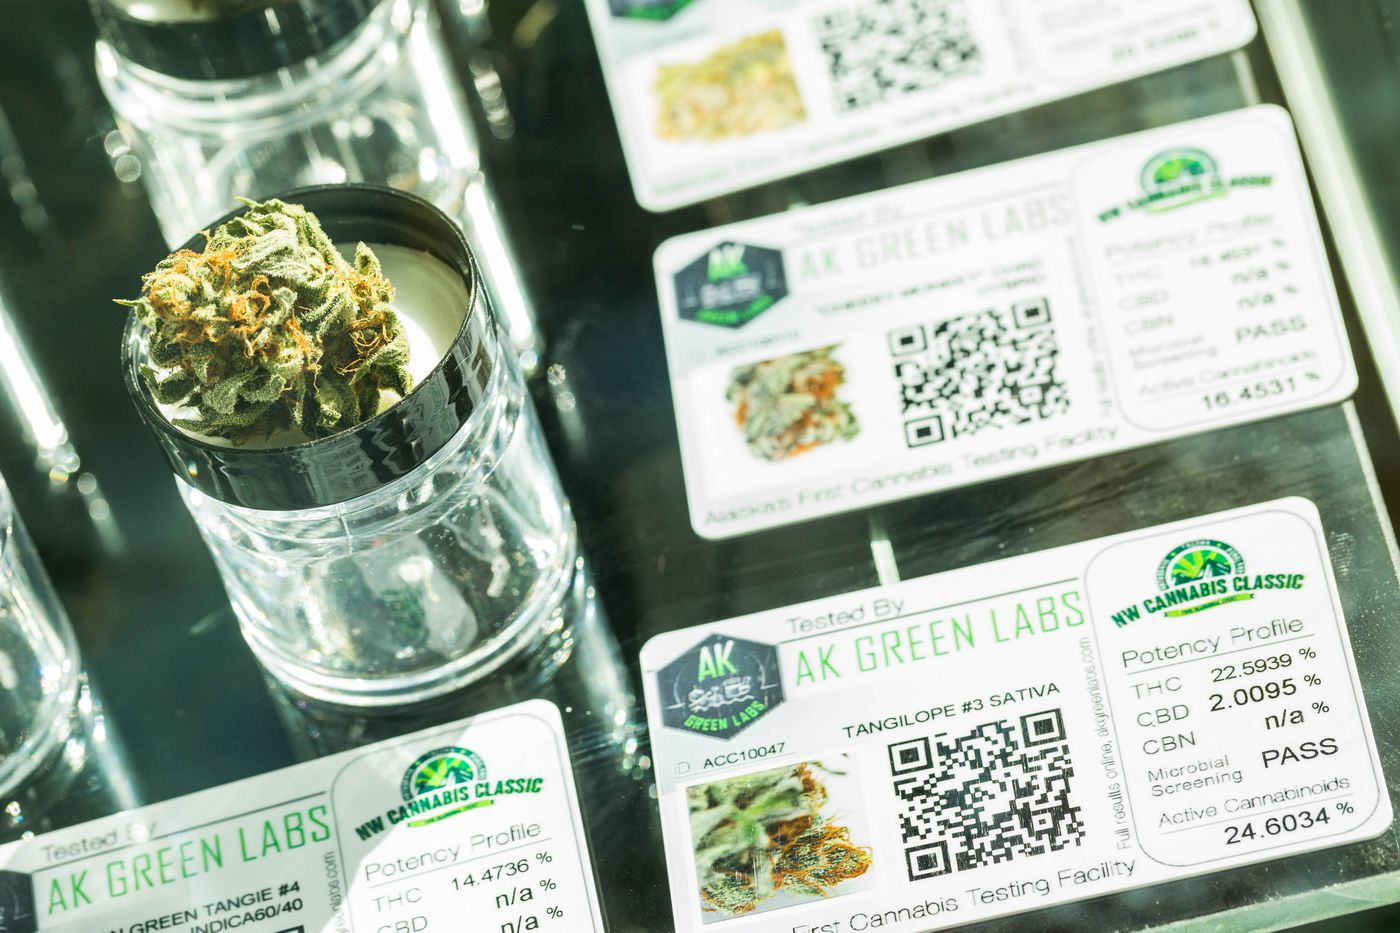 Marijuana buds are displayed under glass after being judged during the inaugural Cannabis Classic competition at the Northwest Cannabis Classic trade show, held at Anchorage's Dena'ina Civic and Convention Center on Saturday, May 16, 2015. A chemical analysis of each strain on a card next to the sample characterizes its potency.